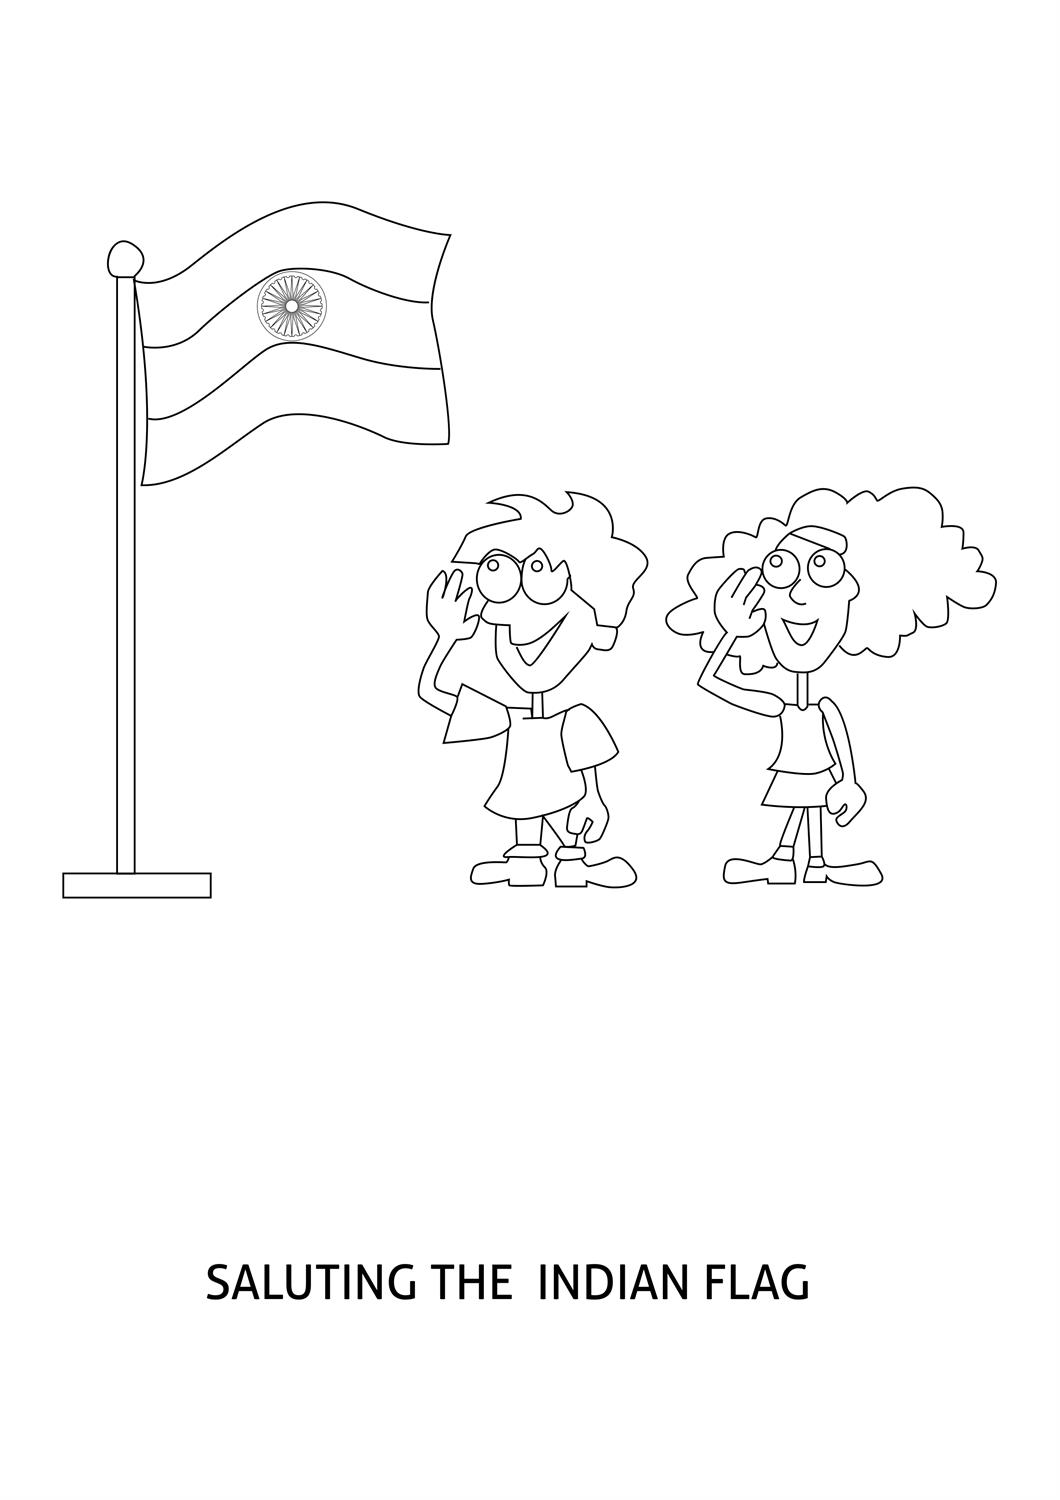 photo regarding Indian Flag Printable called Indian Flag Coloring Webpage